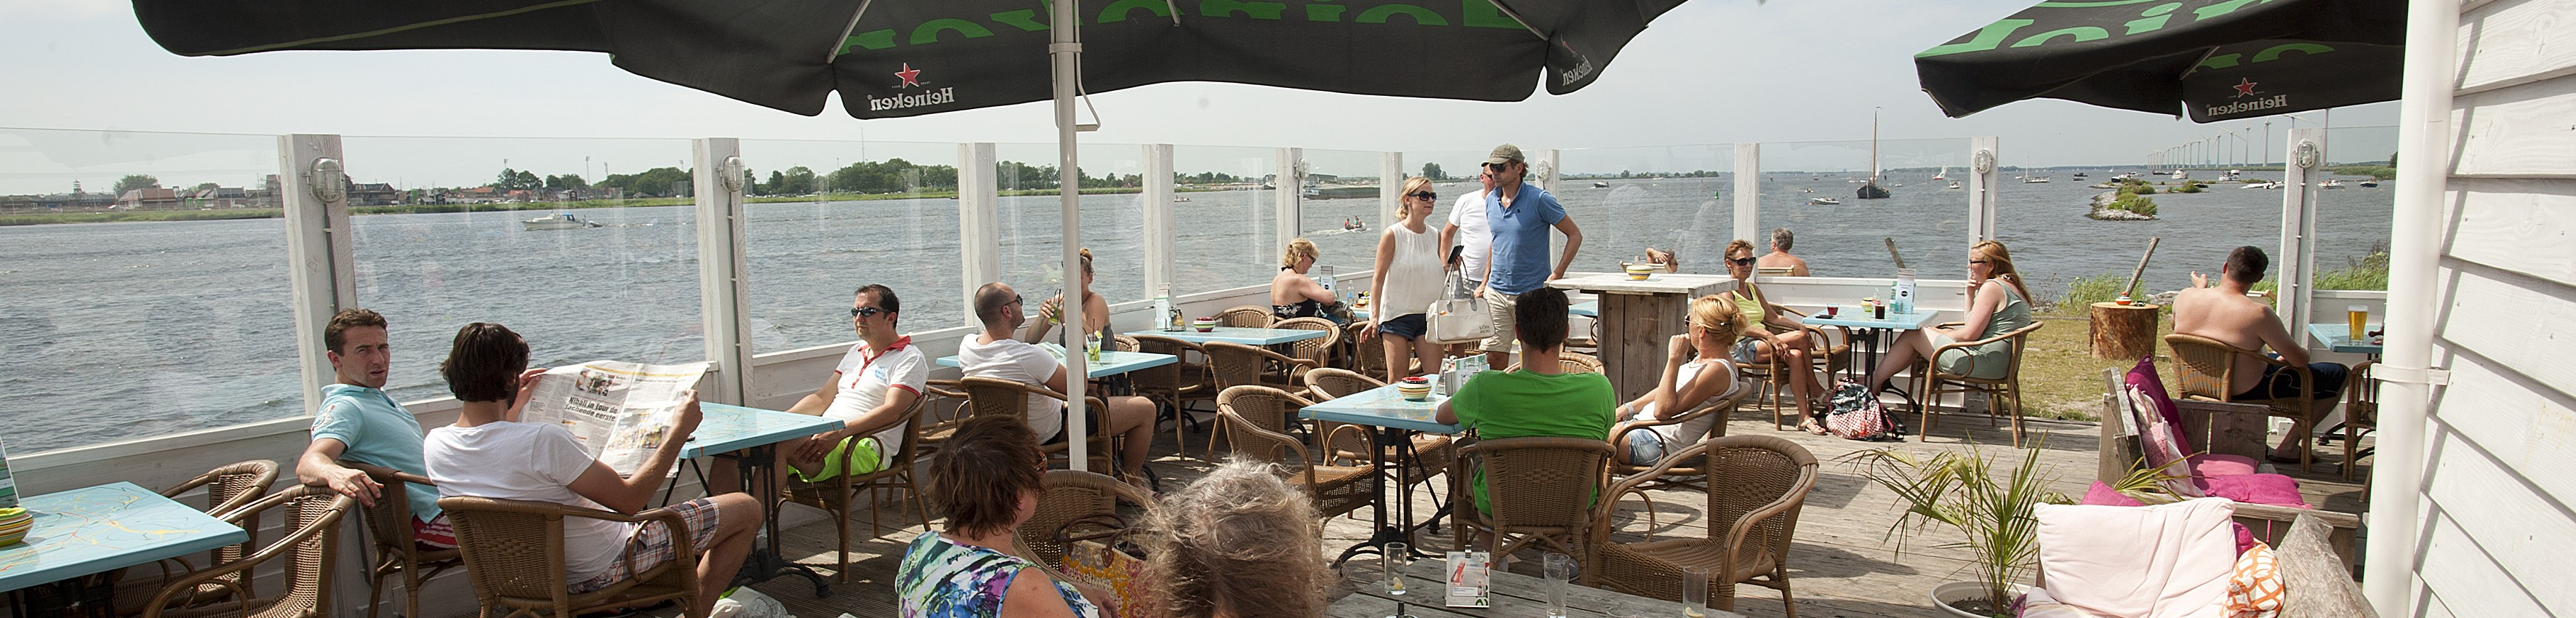 Beachclub Zeewolde | Eemhof Watersport & Beachclub